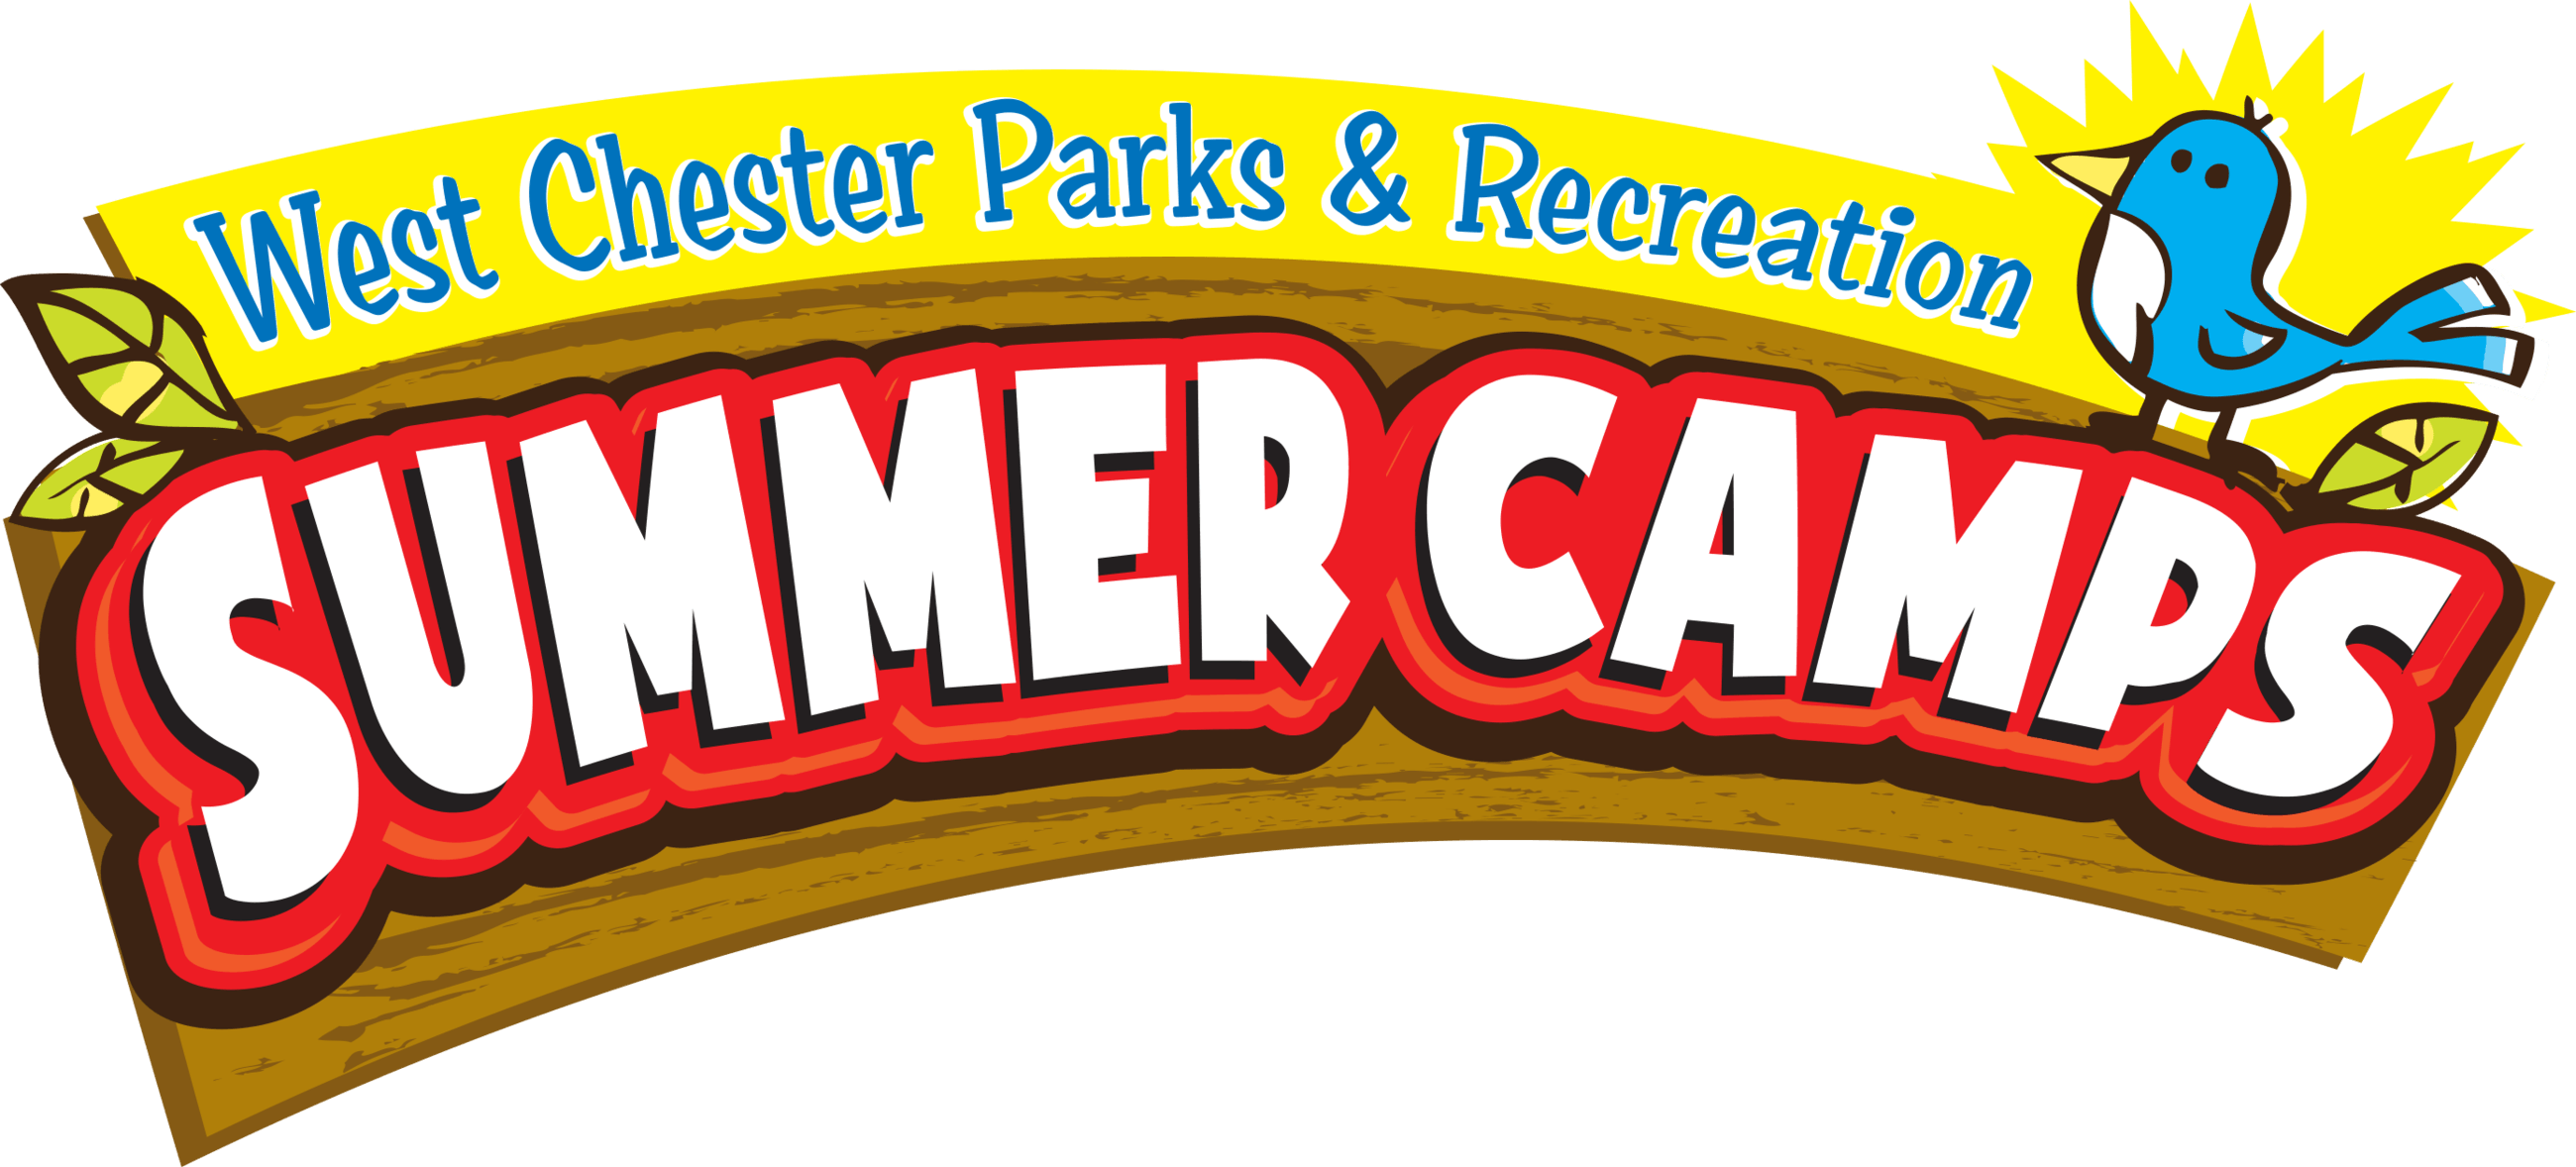 WC_REC_summer_camp_logo